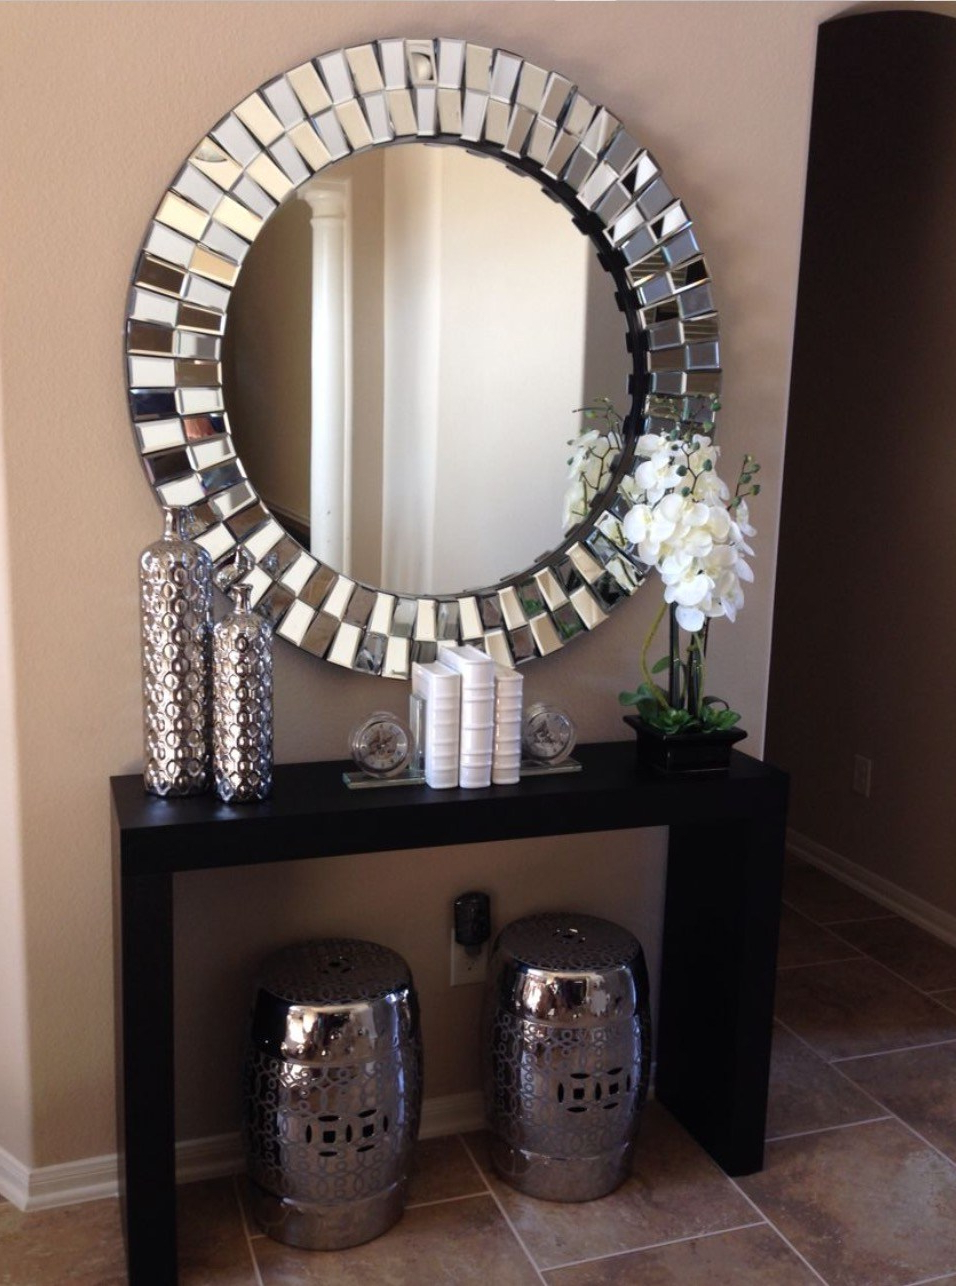 Recent Round Decorative Wall Mirrors Within Round Decorative Wall Mirrors : Decorative Wall Mirrors (Gallery 7 of 20)